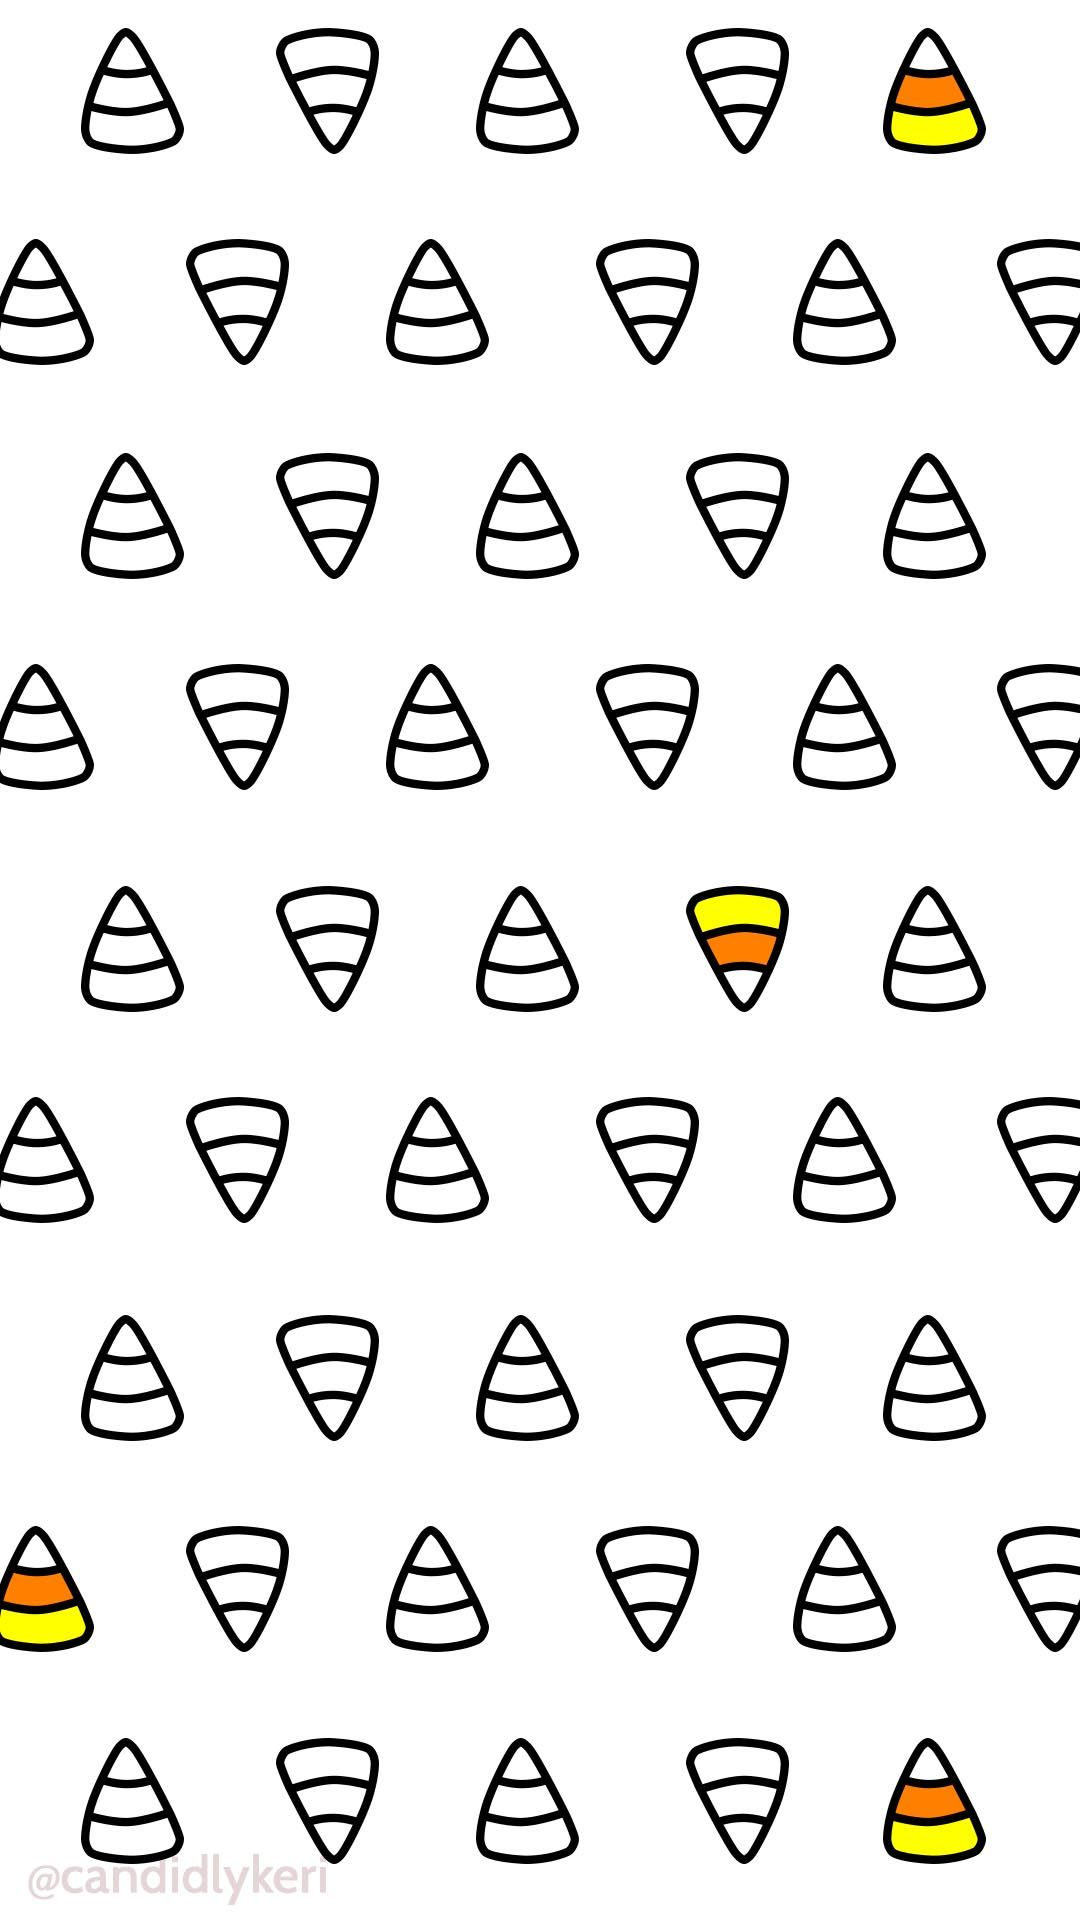 Cute Halloween Candy Corn October 2016 Wallpaper You Can Download For Free On The Blog For Halloween Wallpaper Iphone Halloween Wallpaper Halloween Candy Corn